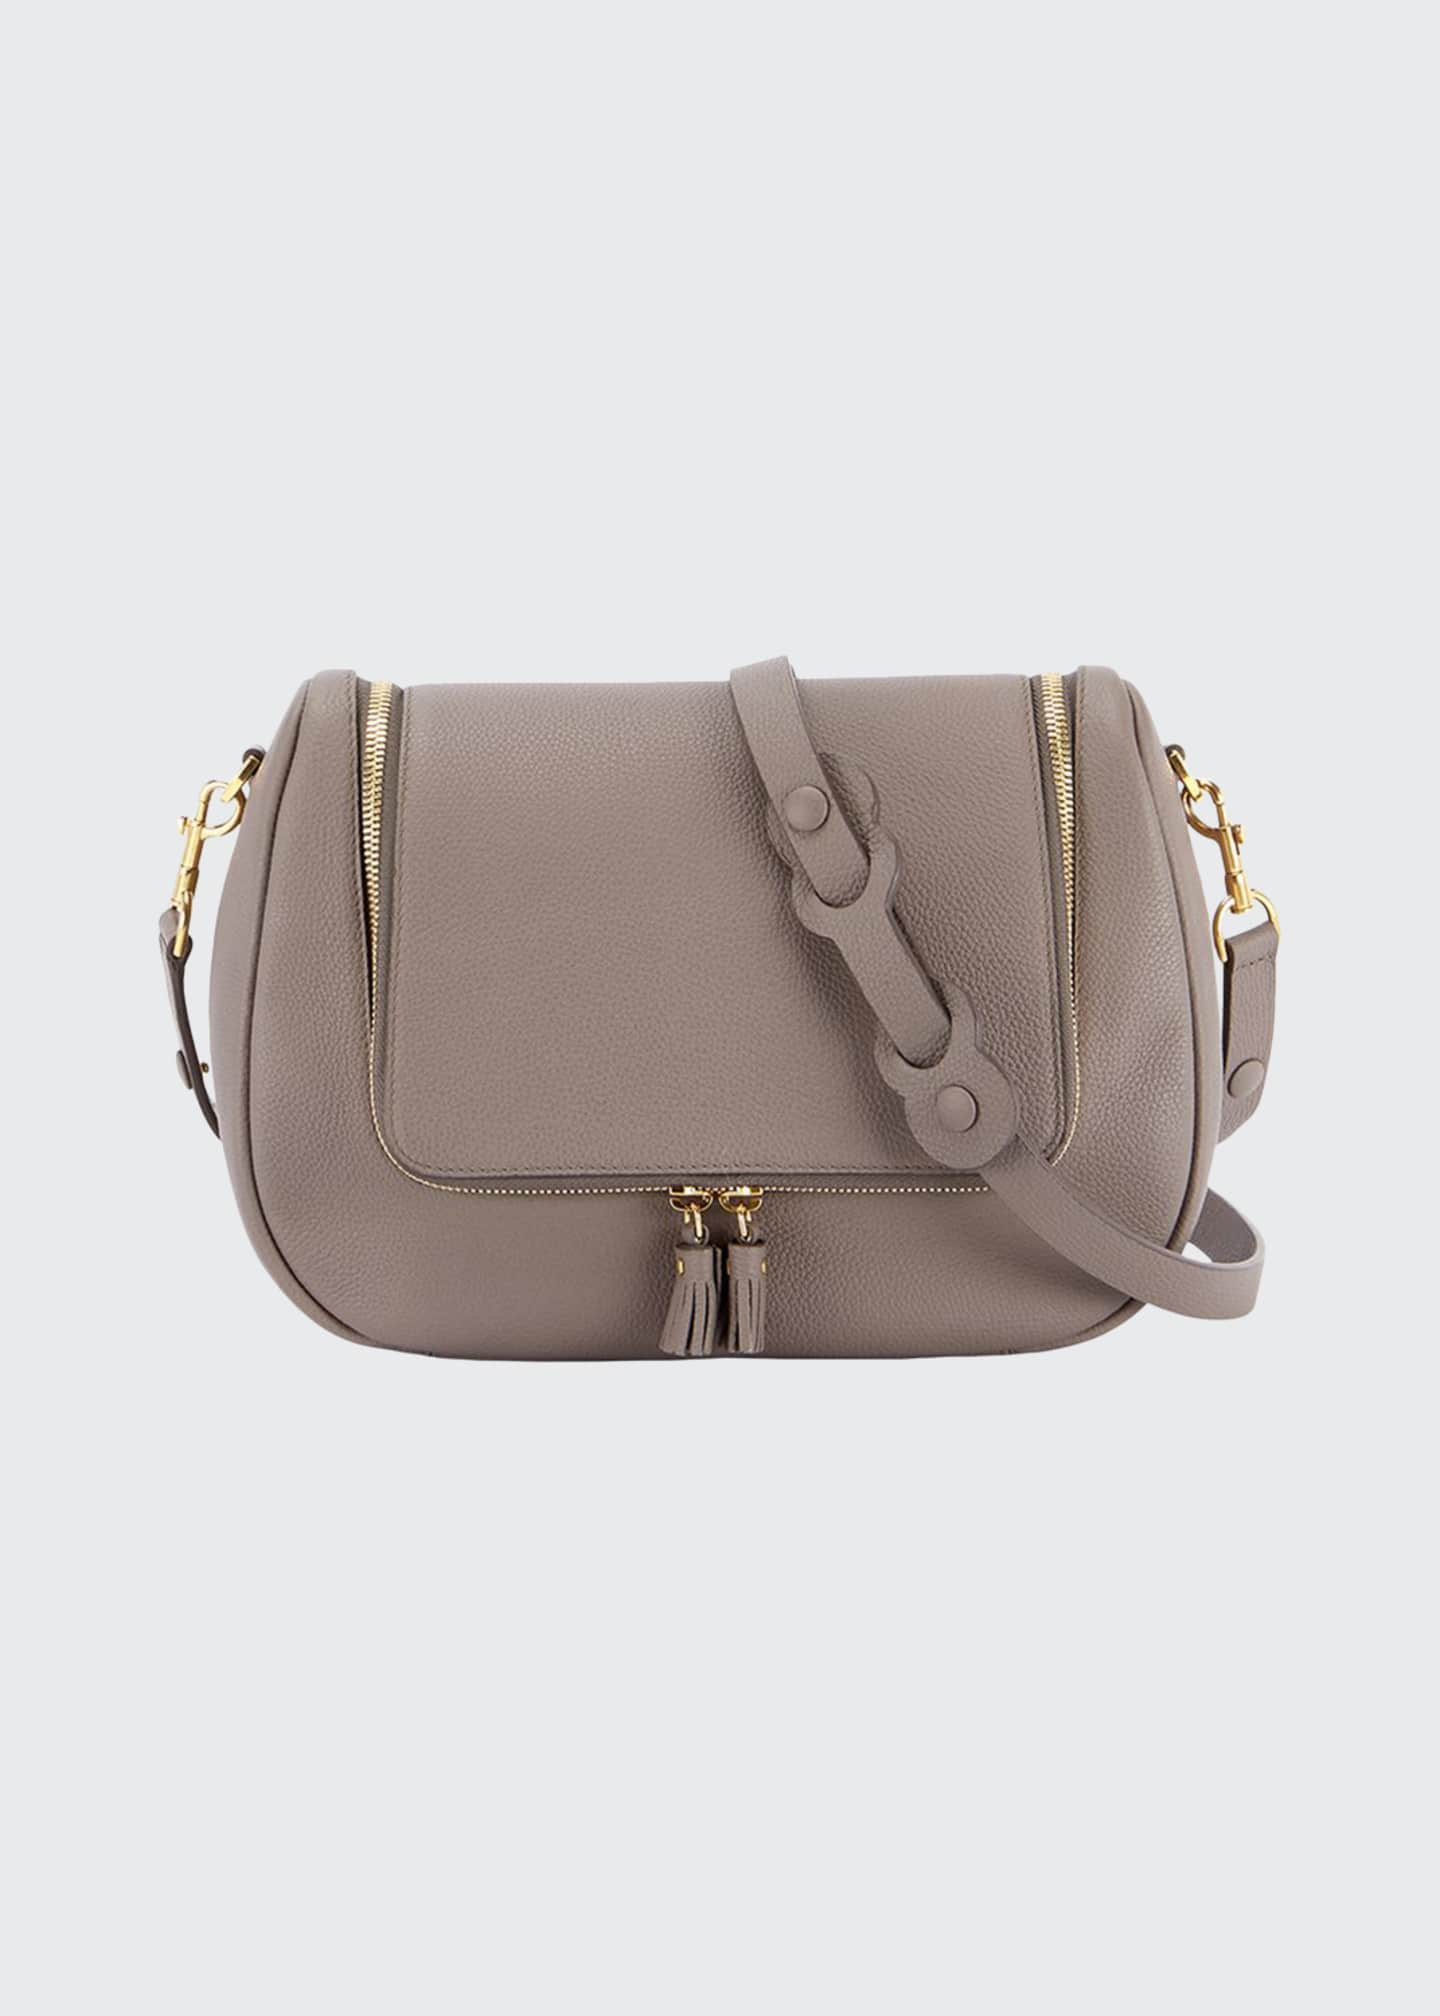 Anya Hindmarch Vere Soft Satchel Bag